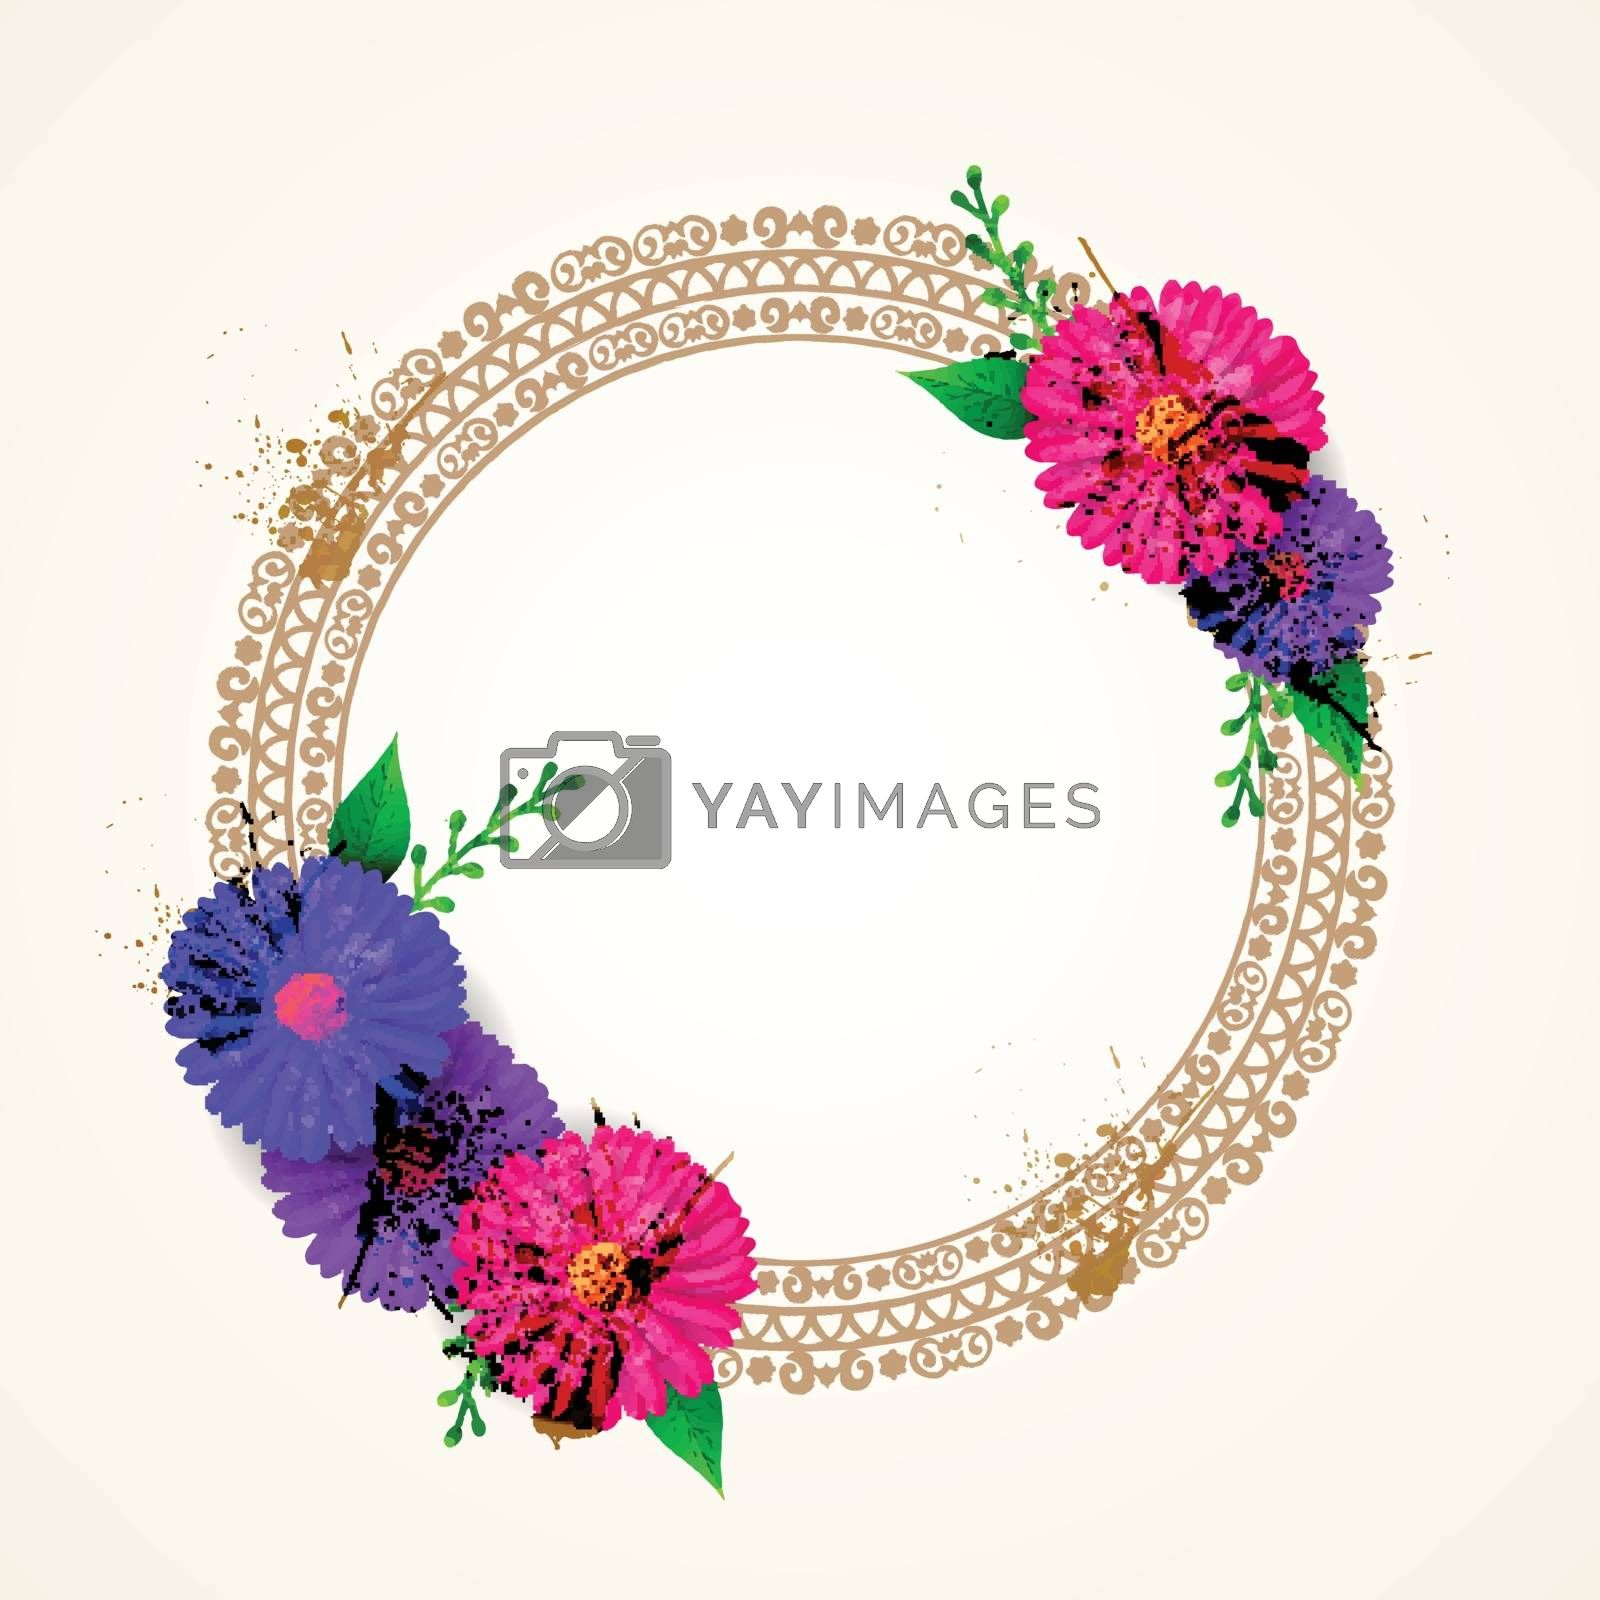 Paper cut design flowers decorated frame in circle shape.